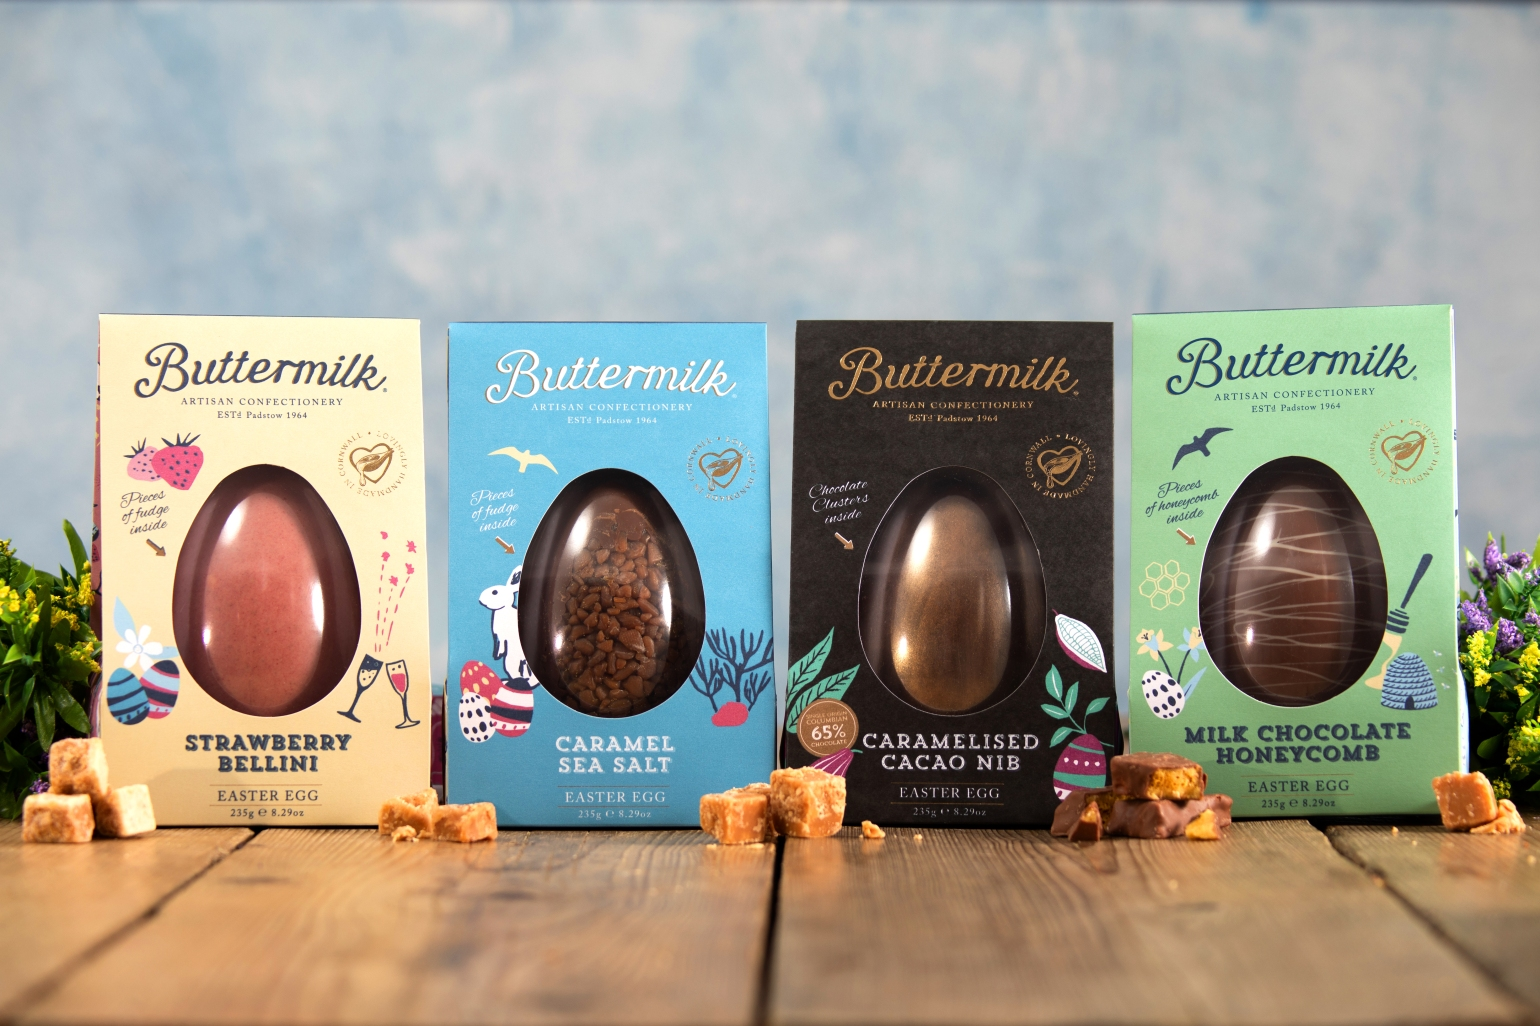 Buttermilk Easter Egg range 2019.jpg